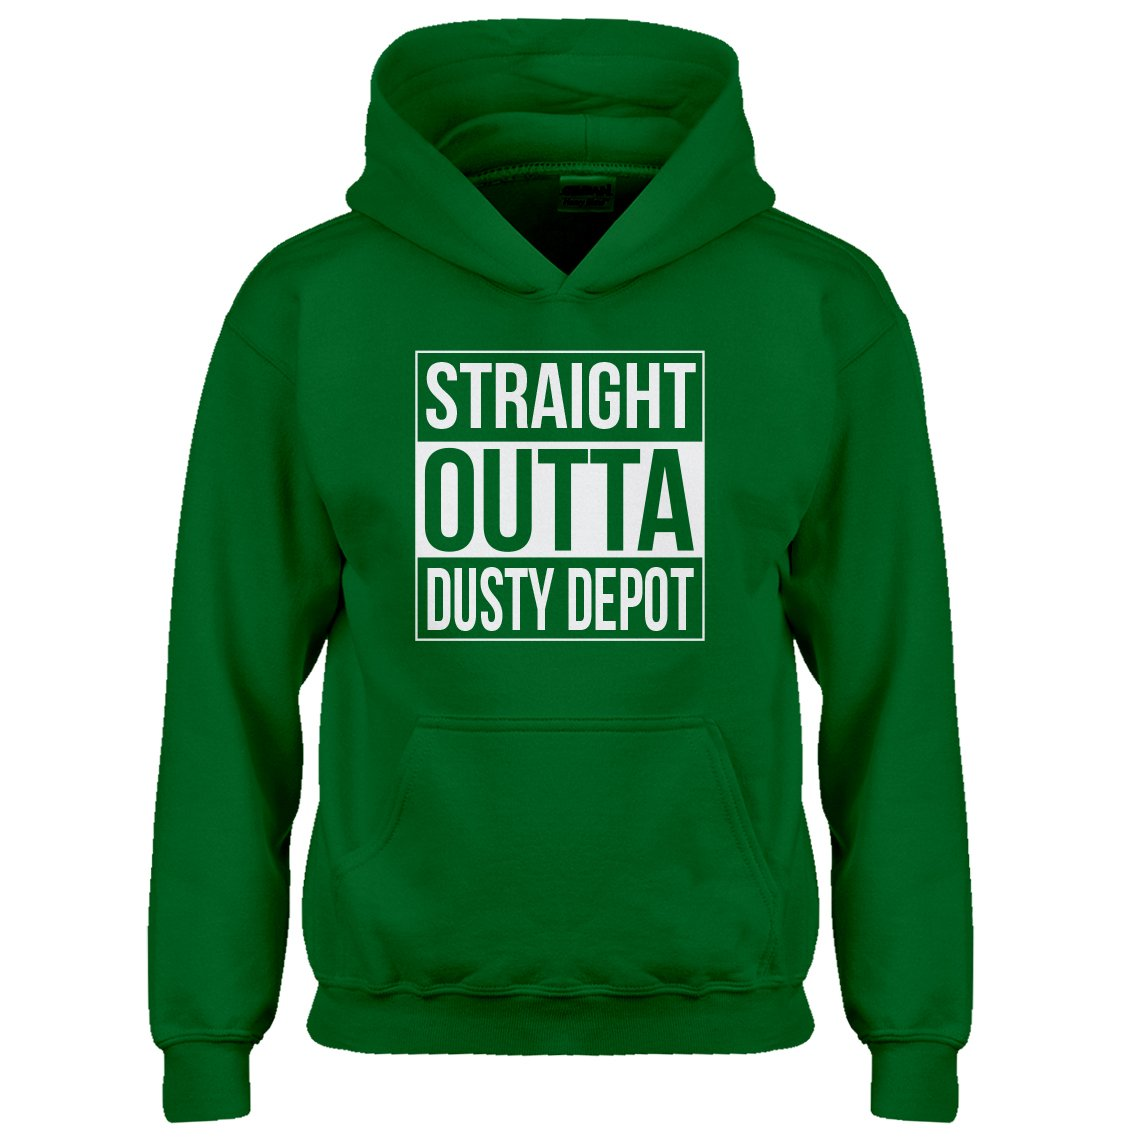 Indica Plateau Straight Outta Dusty Depot Kids Hoodie 3354-Z